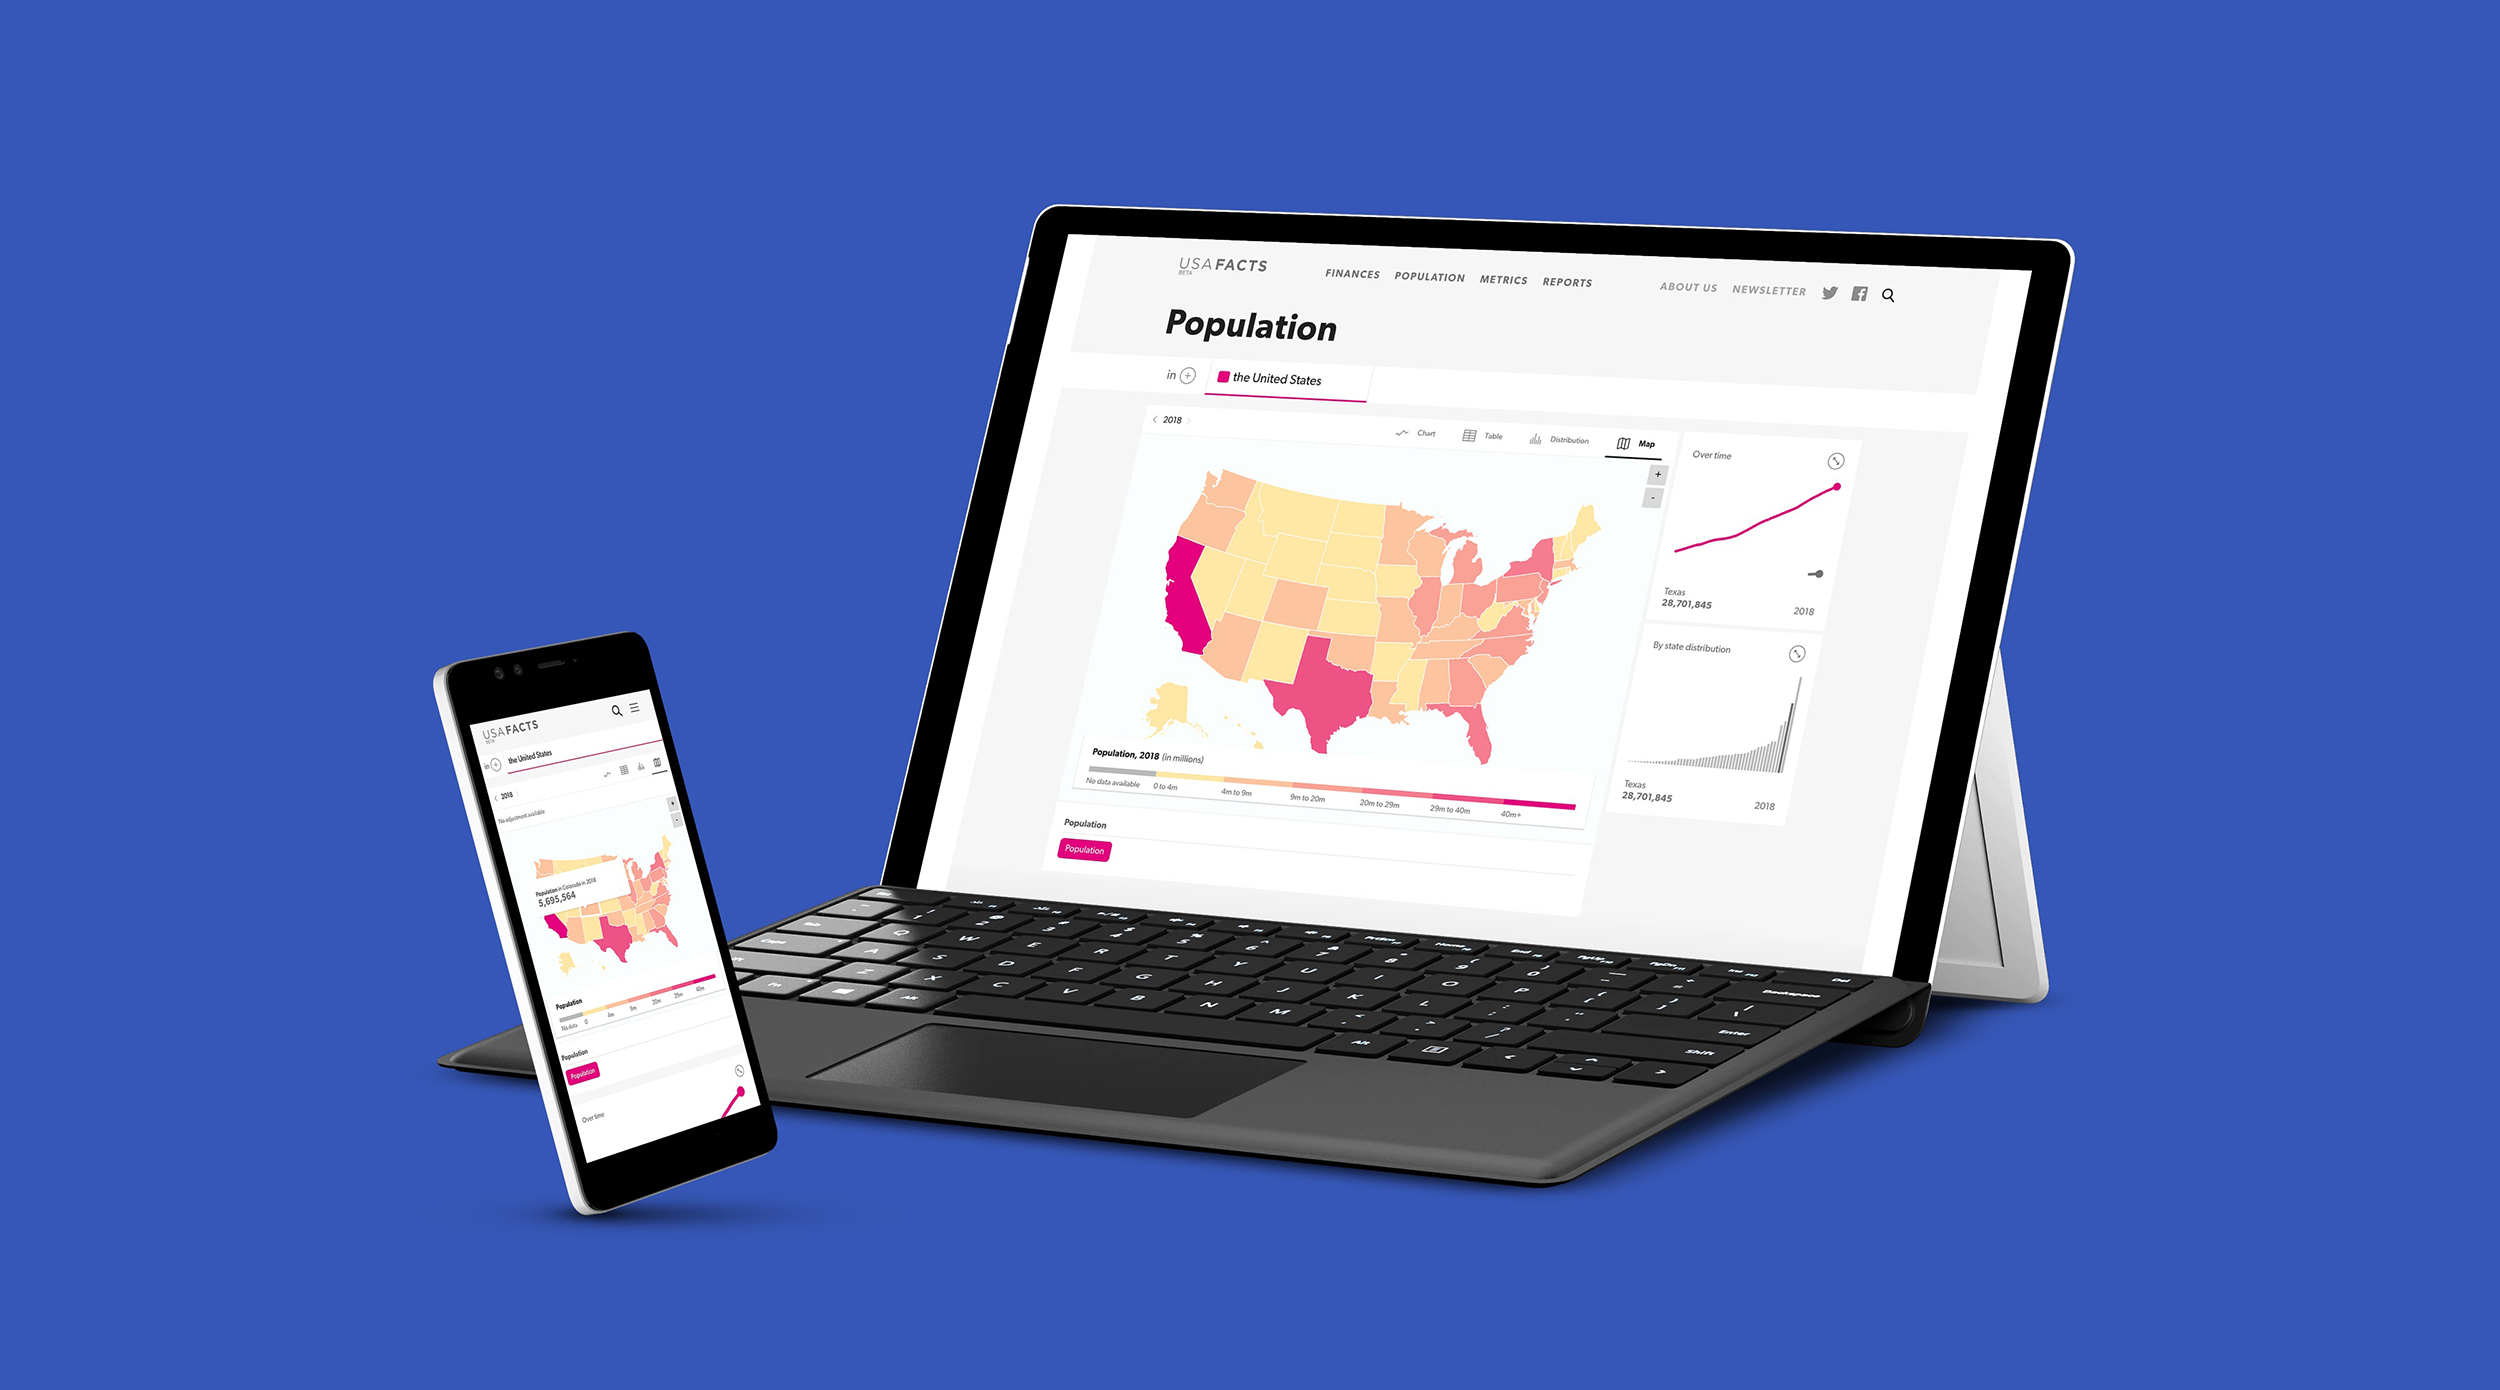 USAFacts population data visualization feature displayed on mobile and laptop screens against a blue background.